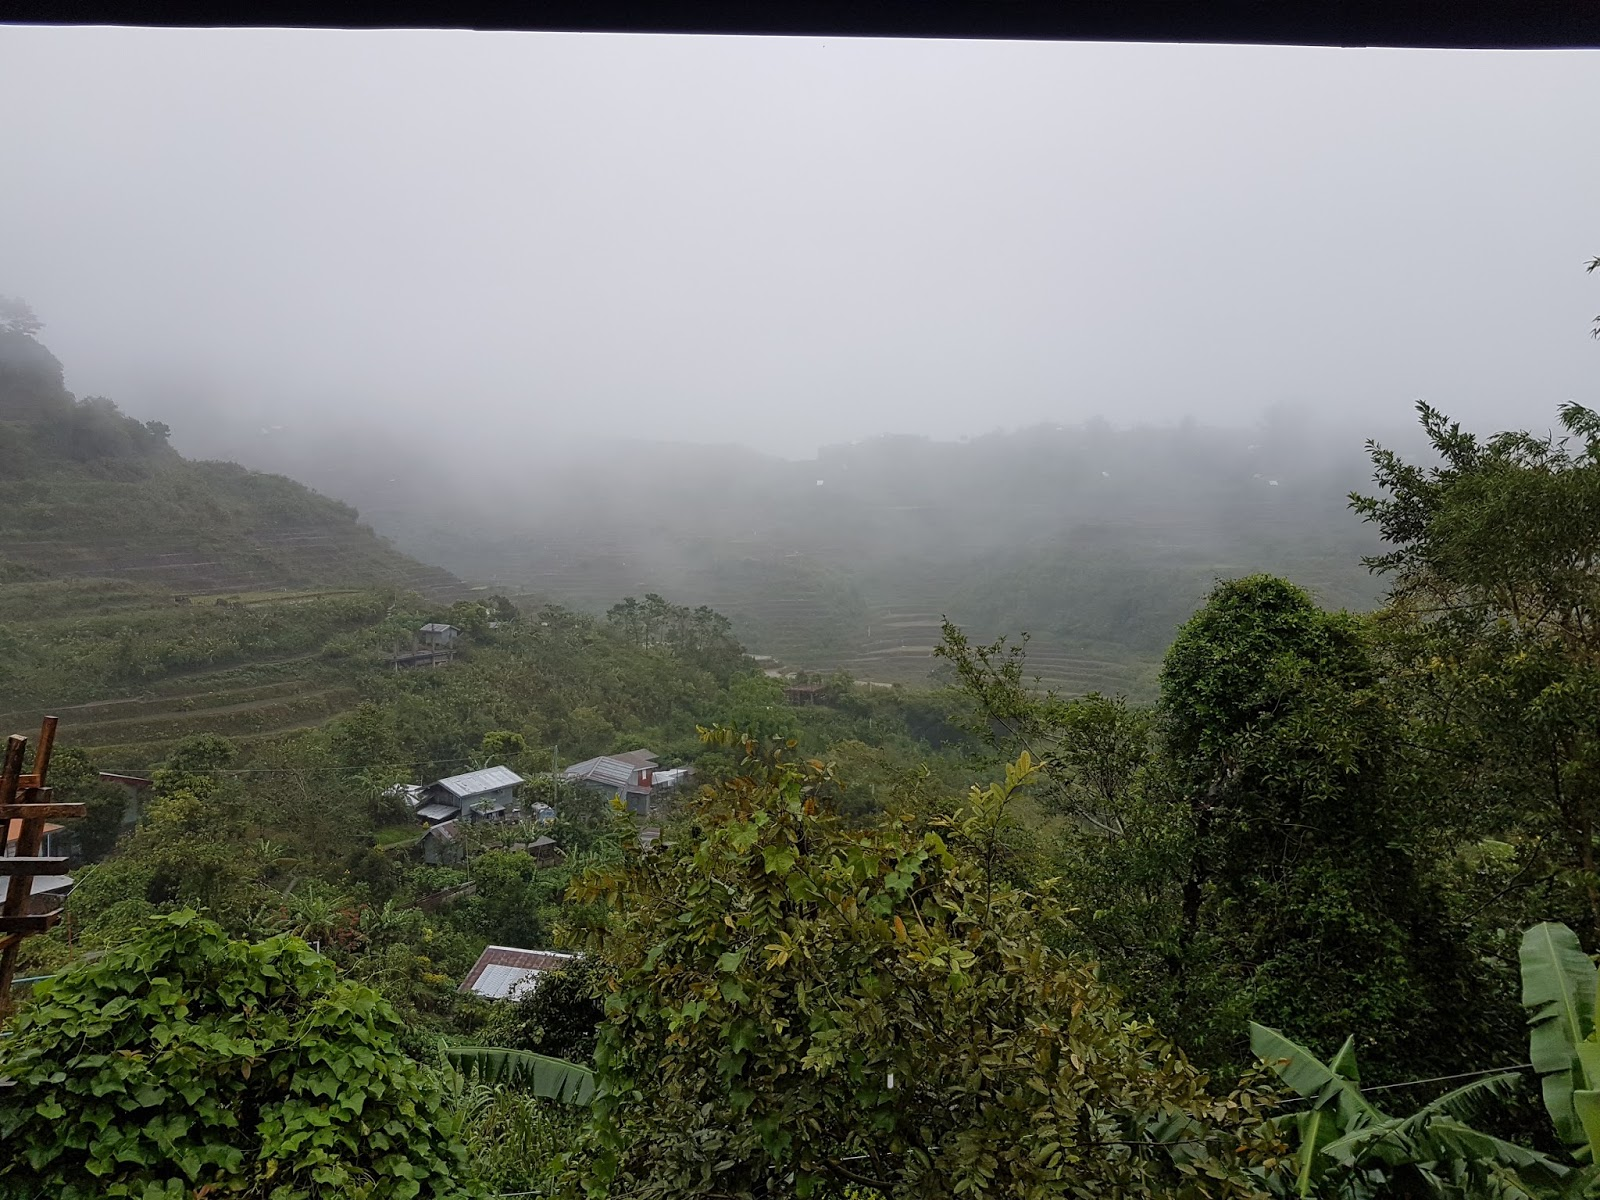 Overlooking the Maligcong Rice Terraces Porch of Ate Suzette's Homestay